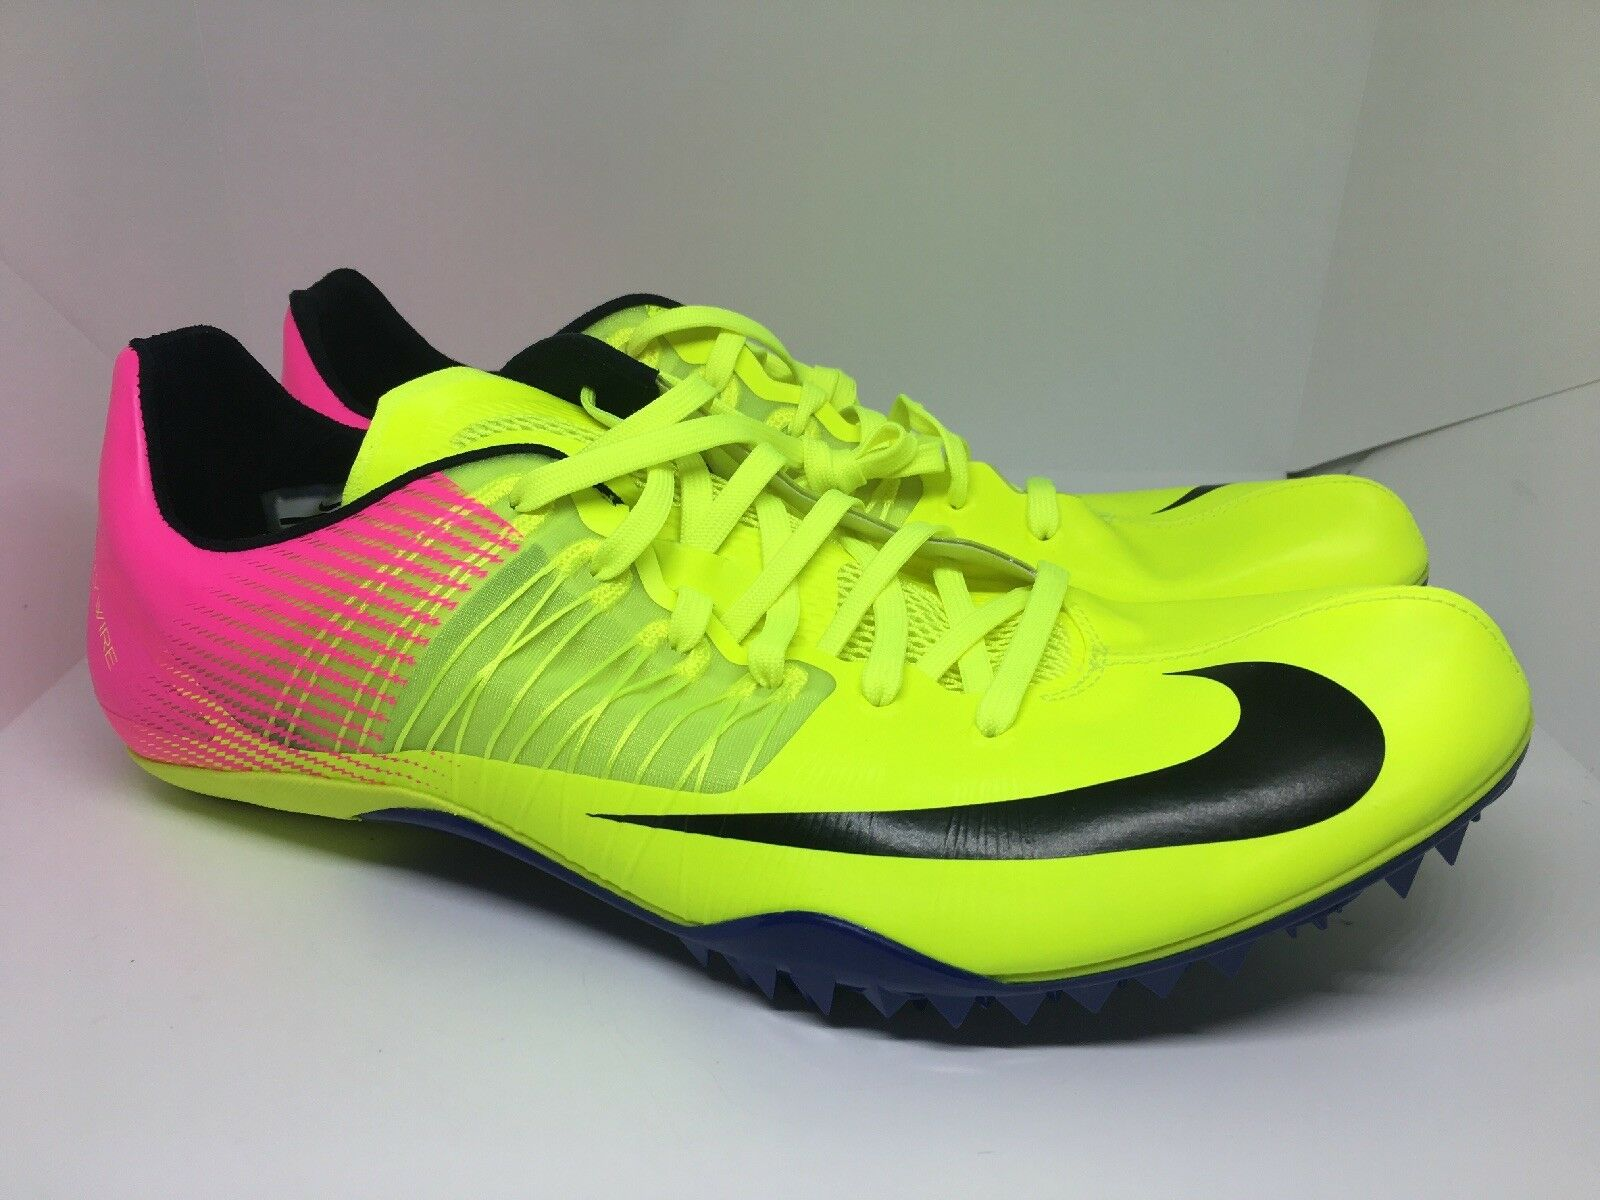 nike zoom celar 5 flywire oc 882023999 course flywire 5 pointes chaussures taille 15 434615